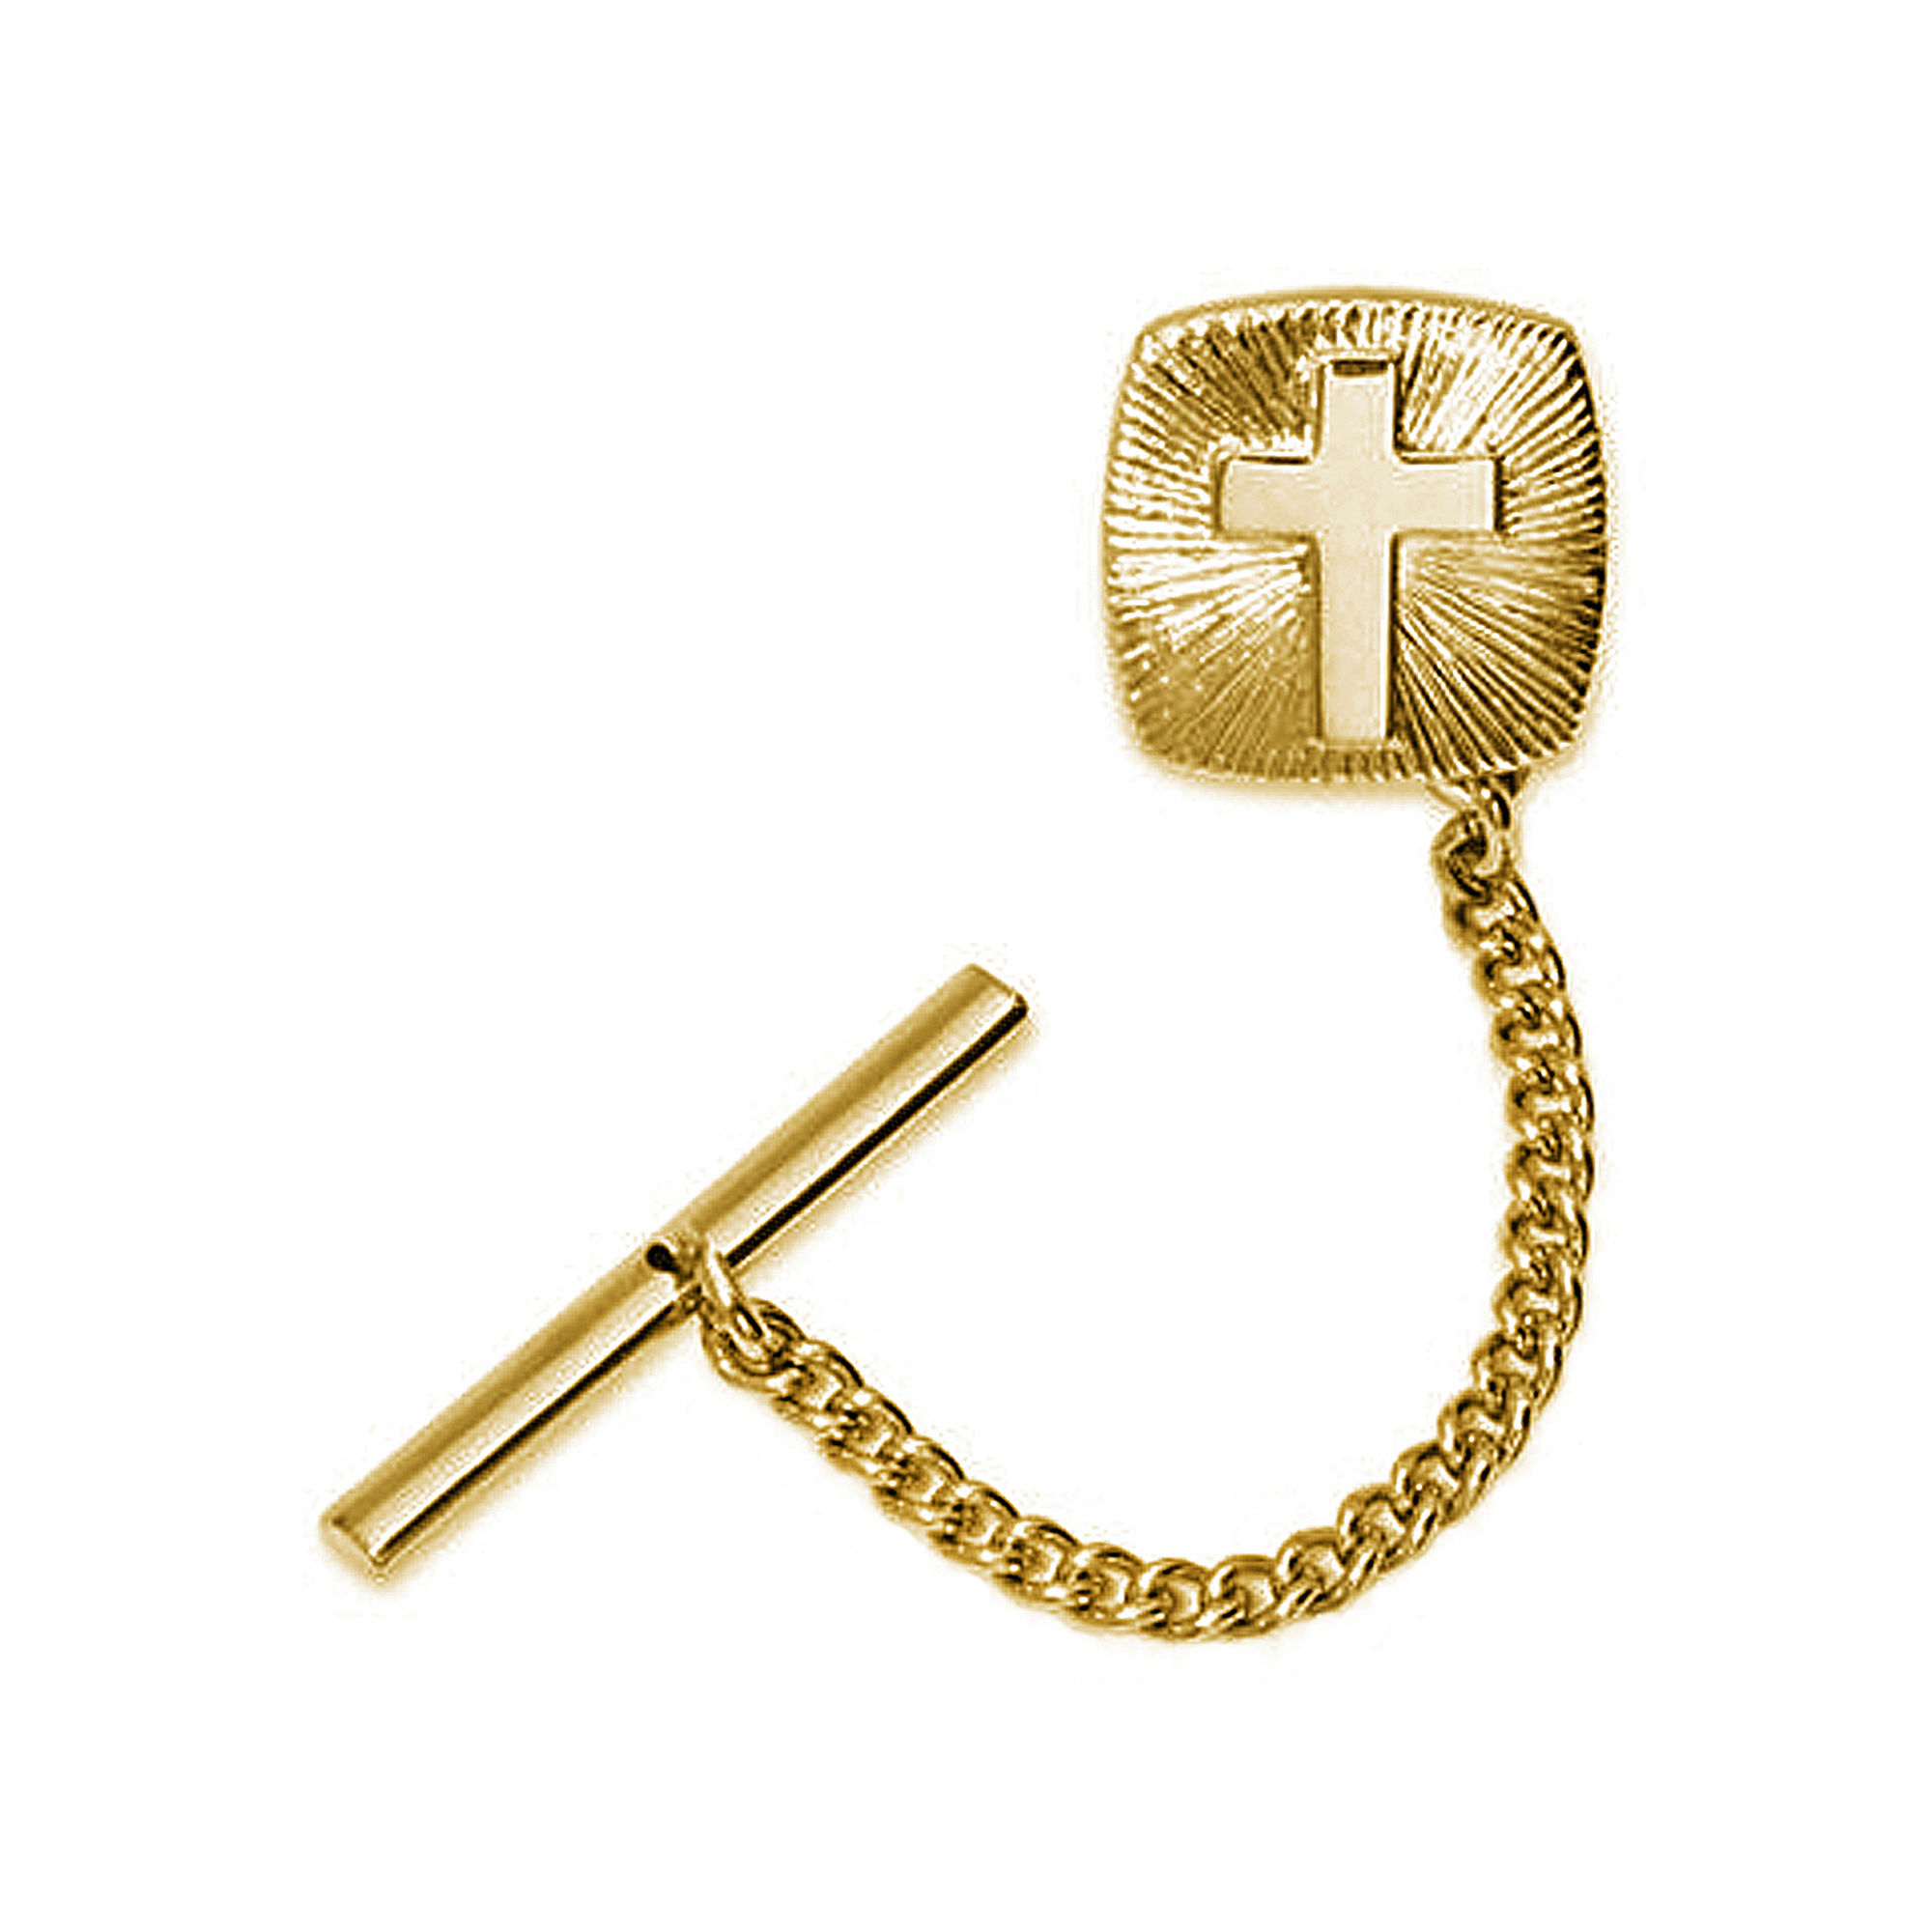 Gold-Plated Cross Starburst Tie Tack